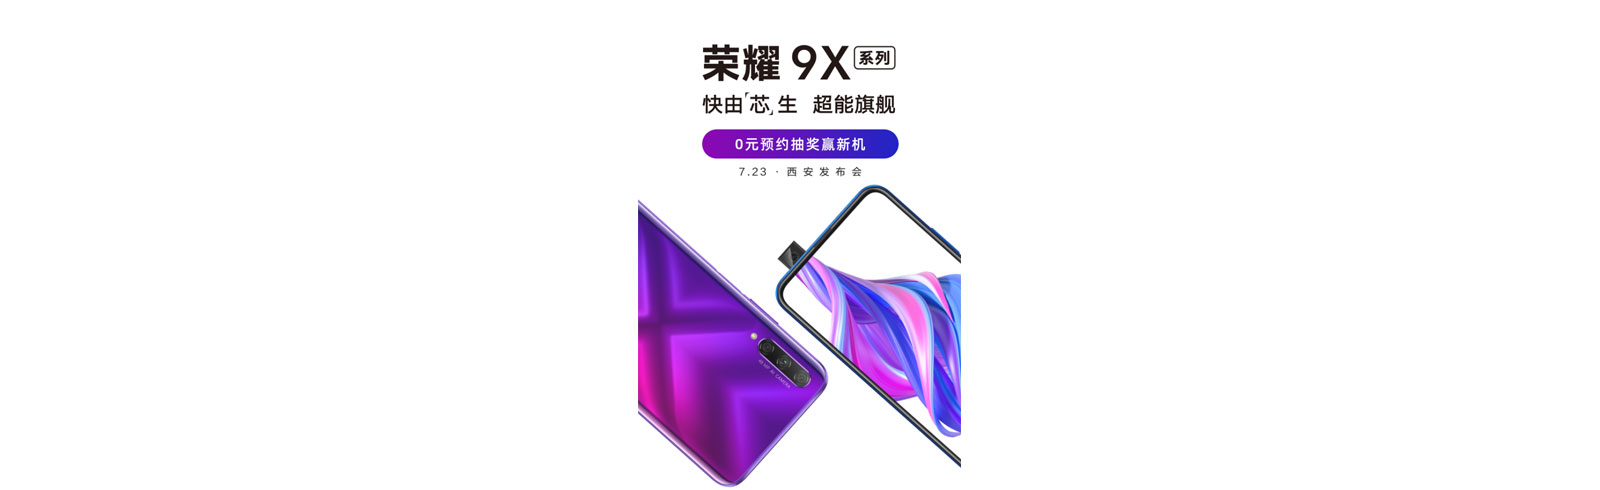 Honor 9X Pro receives a reservation page on Vmall